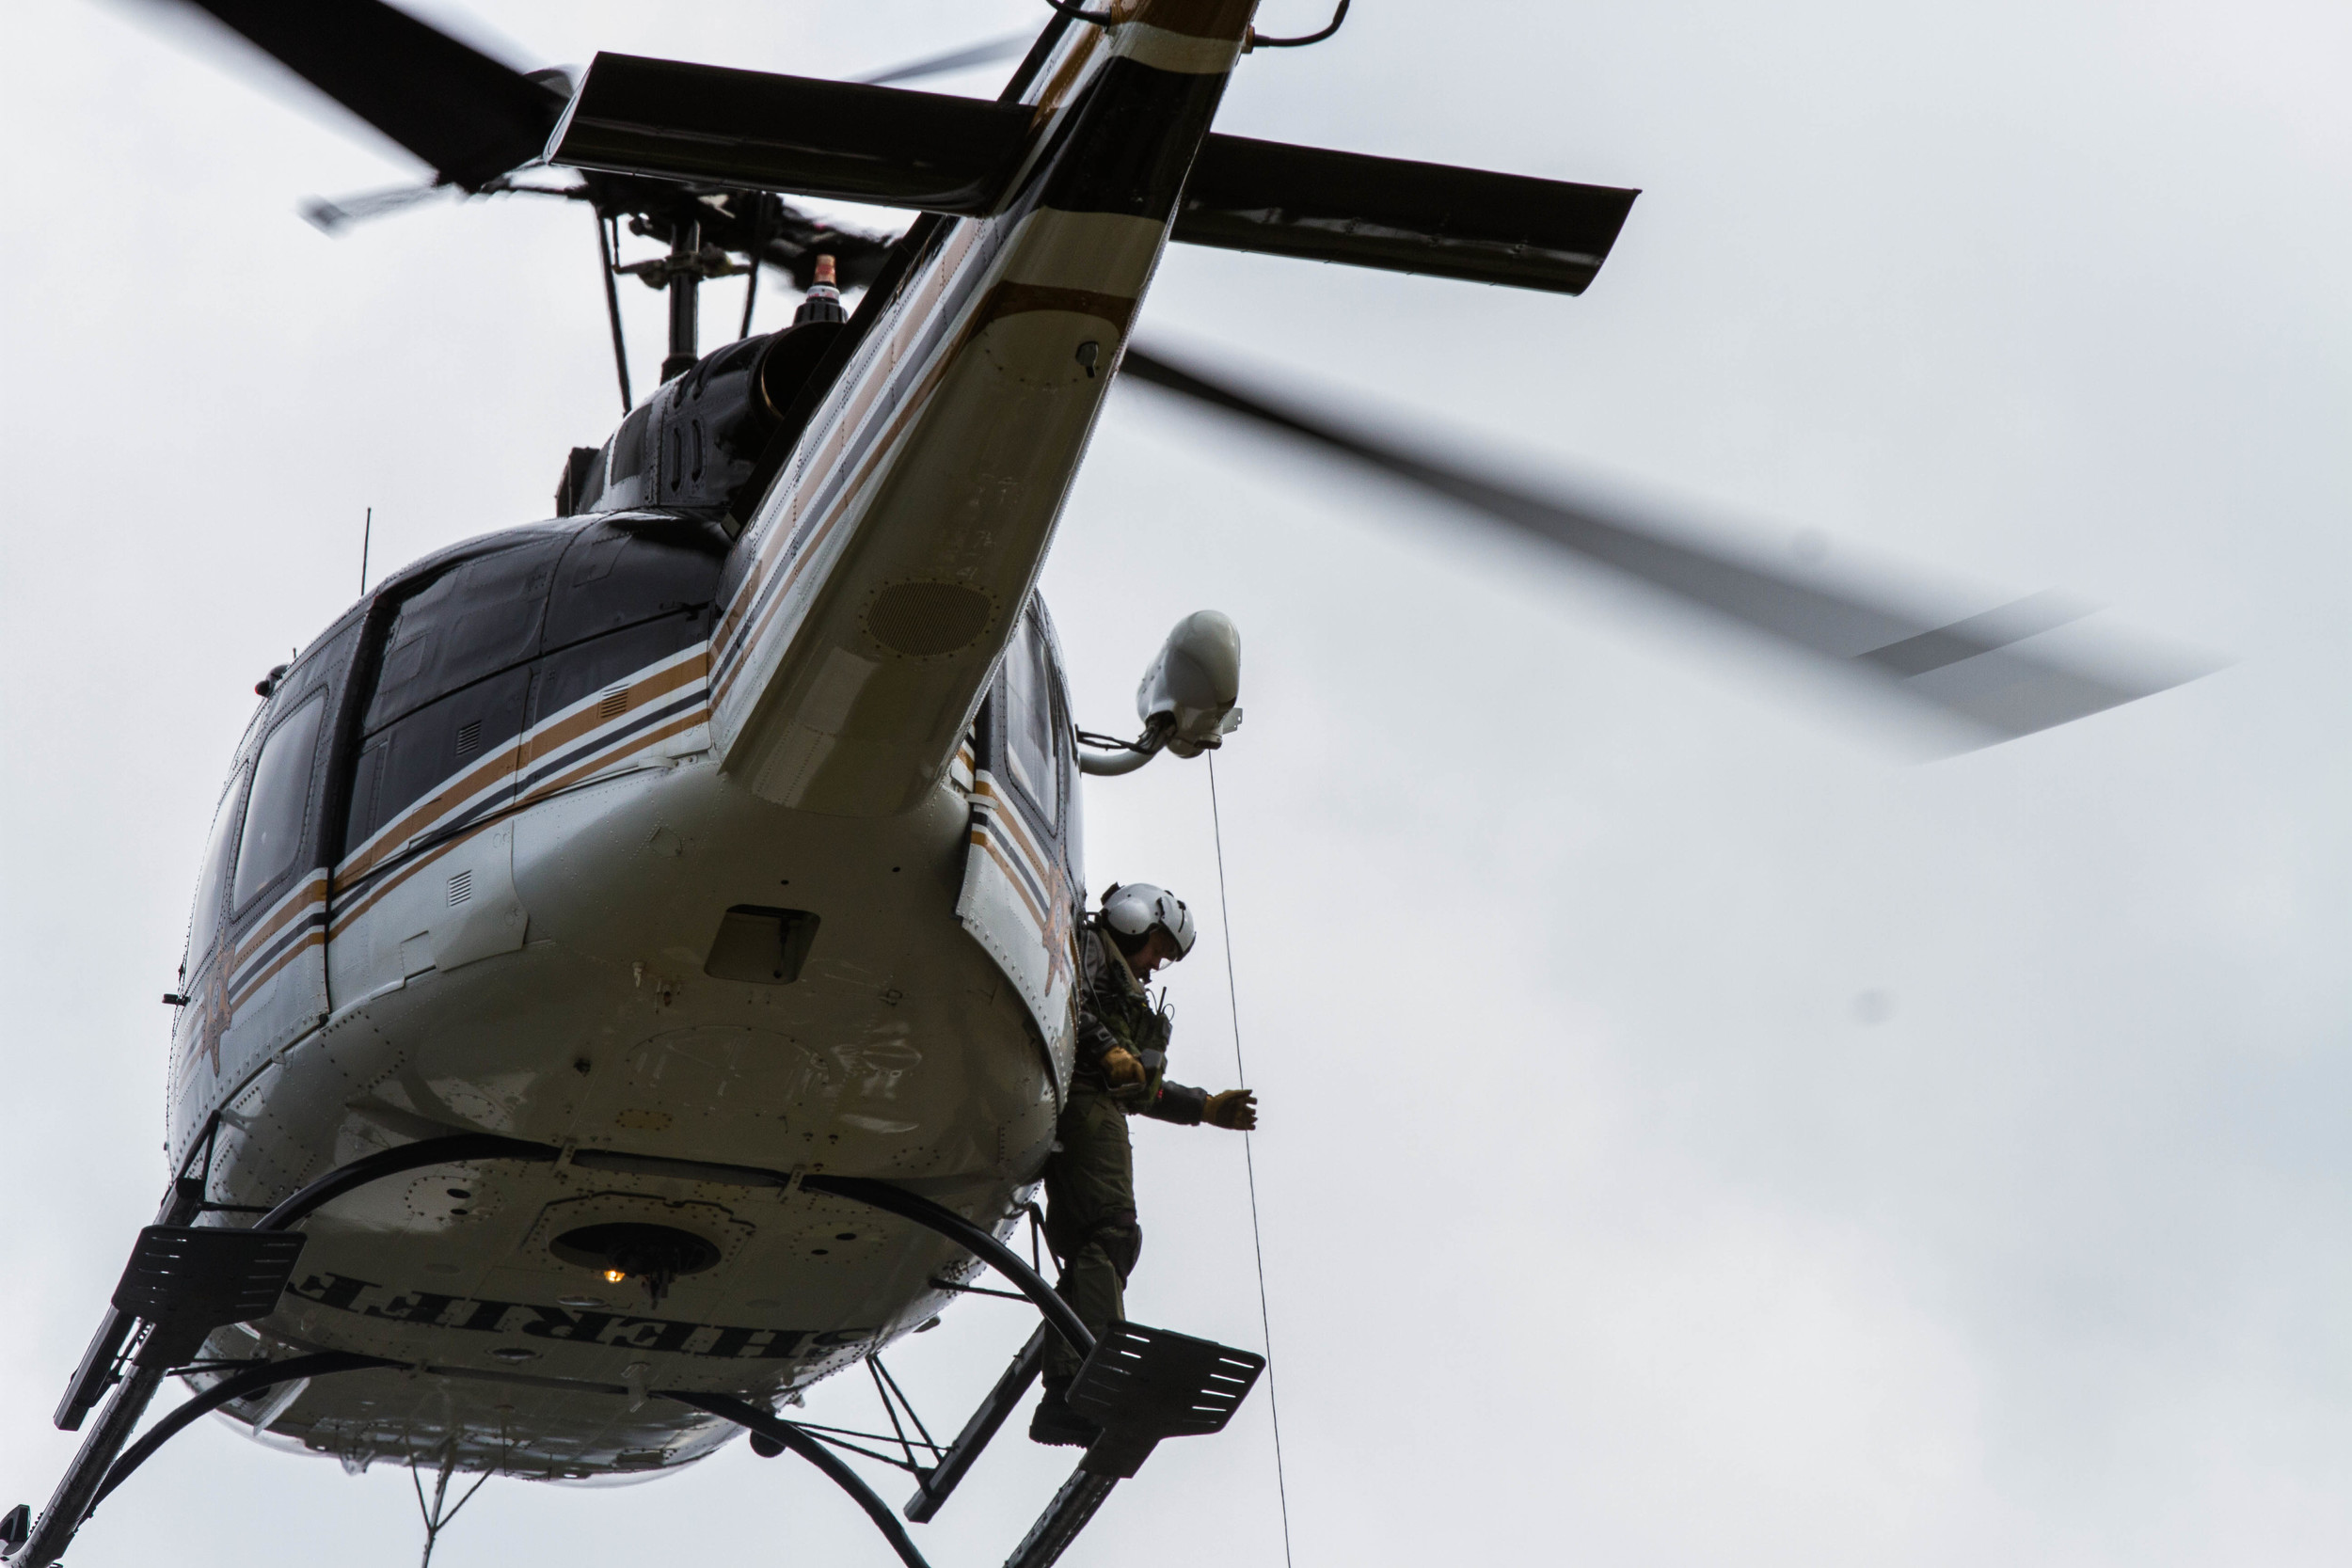 Crew chief, Deputy Beau Beckner, stands outside of SnoHawk 10 to operate the hoist during a training session with the Snohomish County Search and Rescue Helicopter Rescue Team.